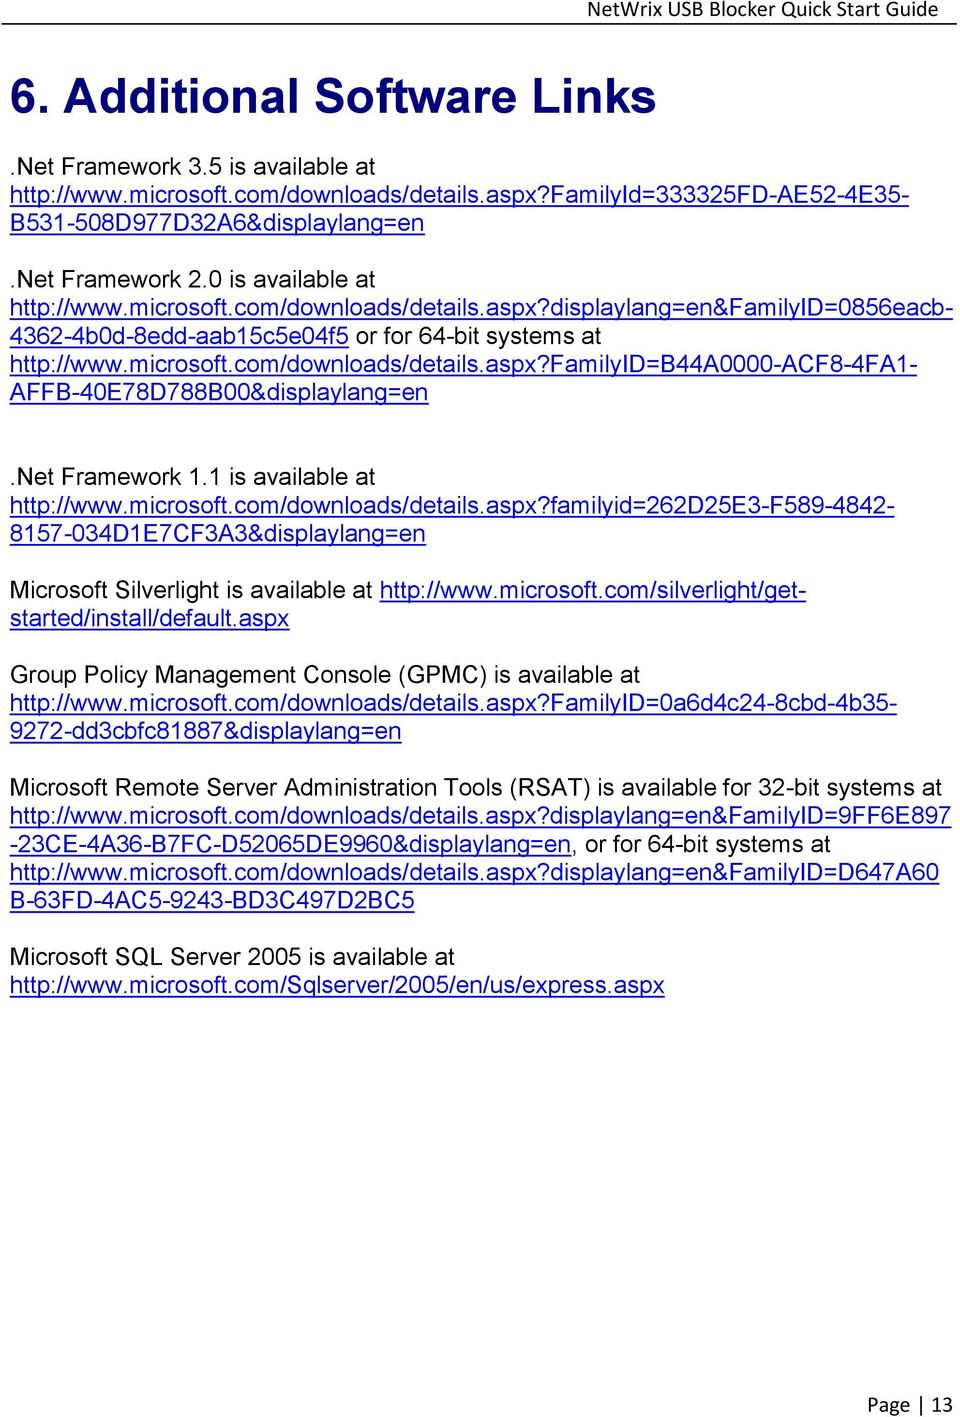 Net Framework 1.1 is available at http://www.microsoft.com/downloads/details.aspx?familyid=262d25e3-f589-4842- 8157-034D1E7CF3A3&displaylang=en Microsoft Silverlight is available at http://www.